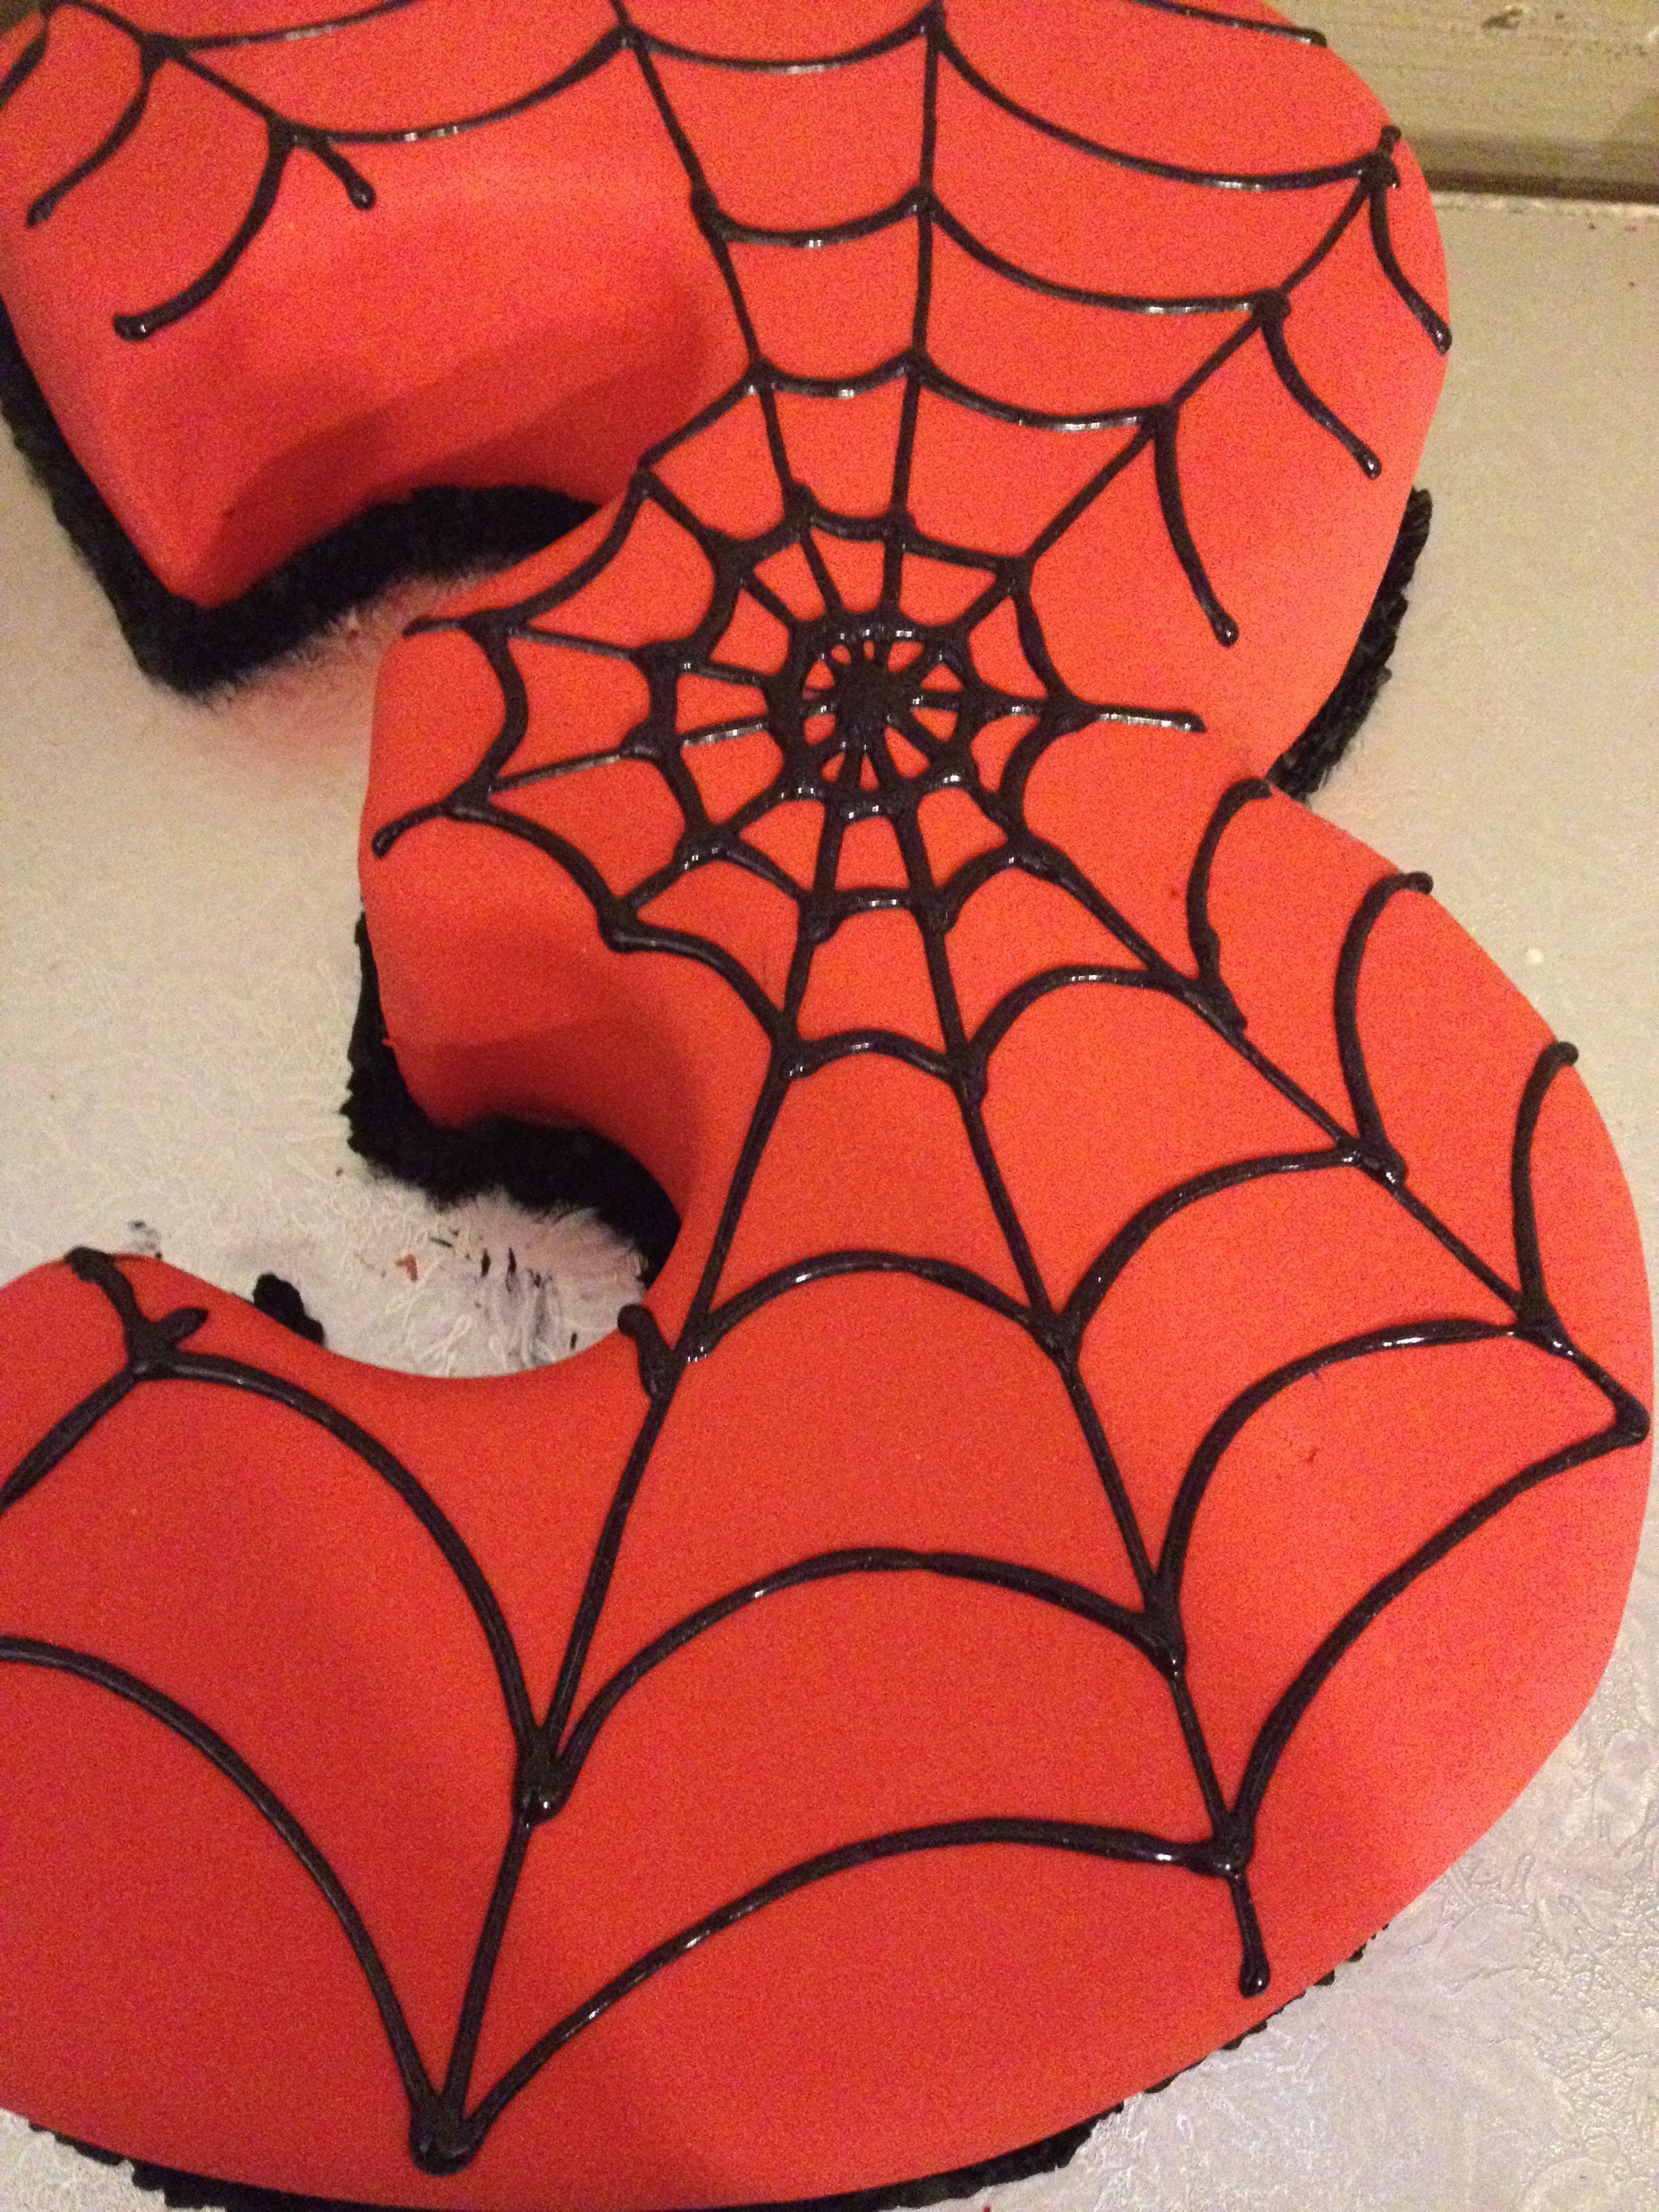 Belles spiderman cake delights a 3 year old spiderman